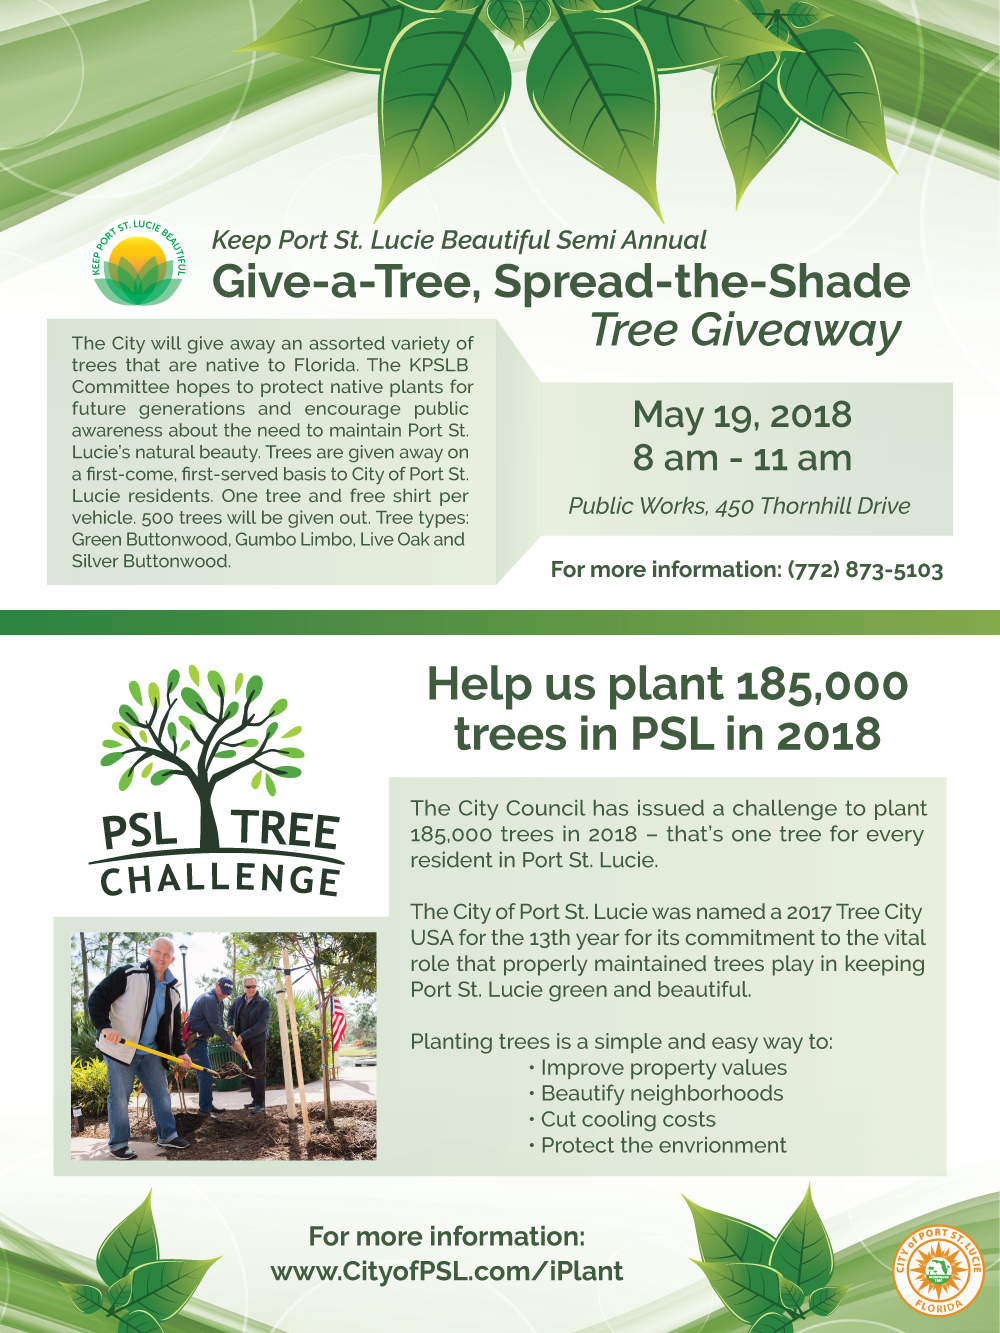 Tree Challenge & Tree Giveaway Flyer